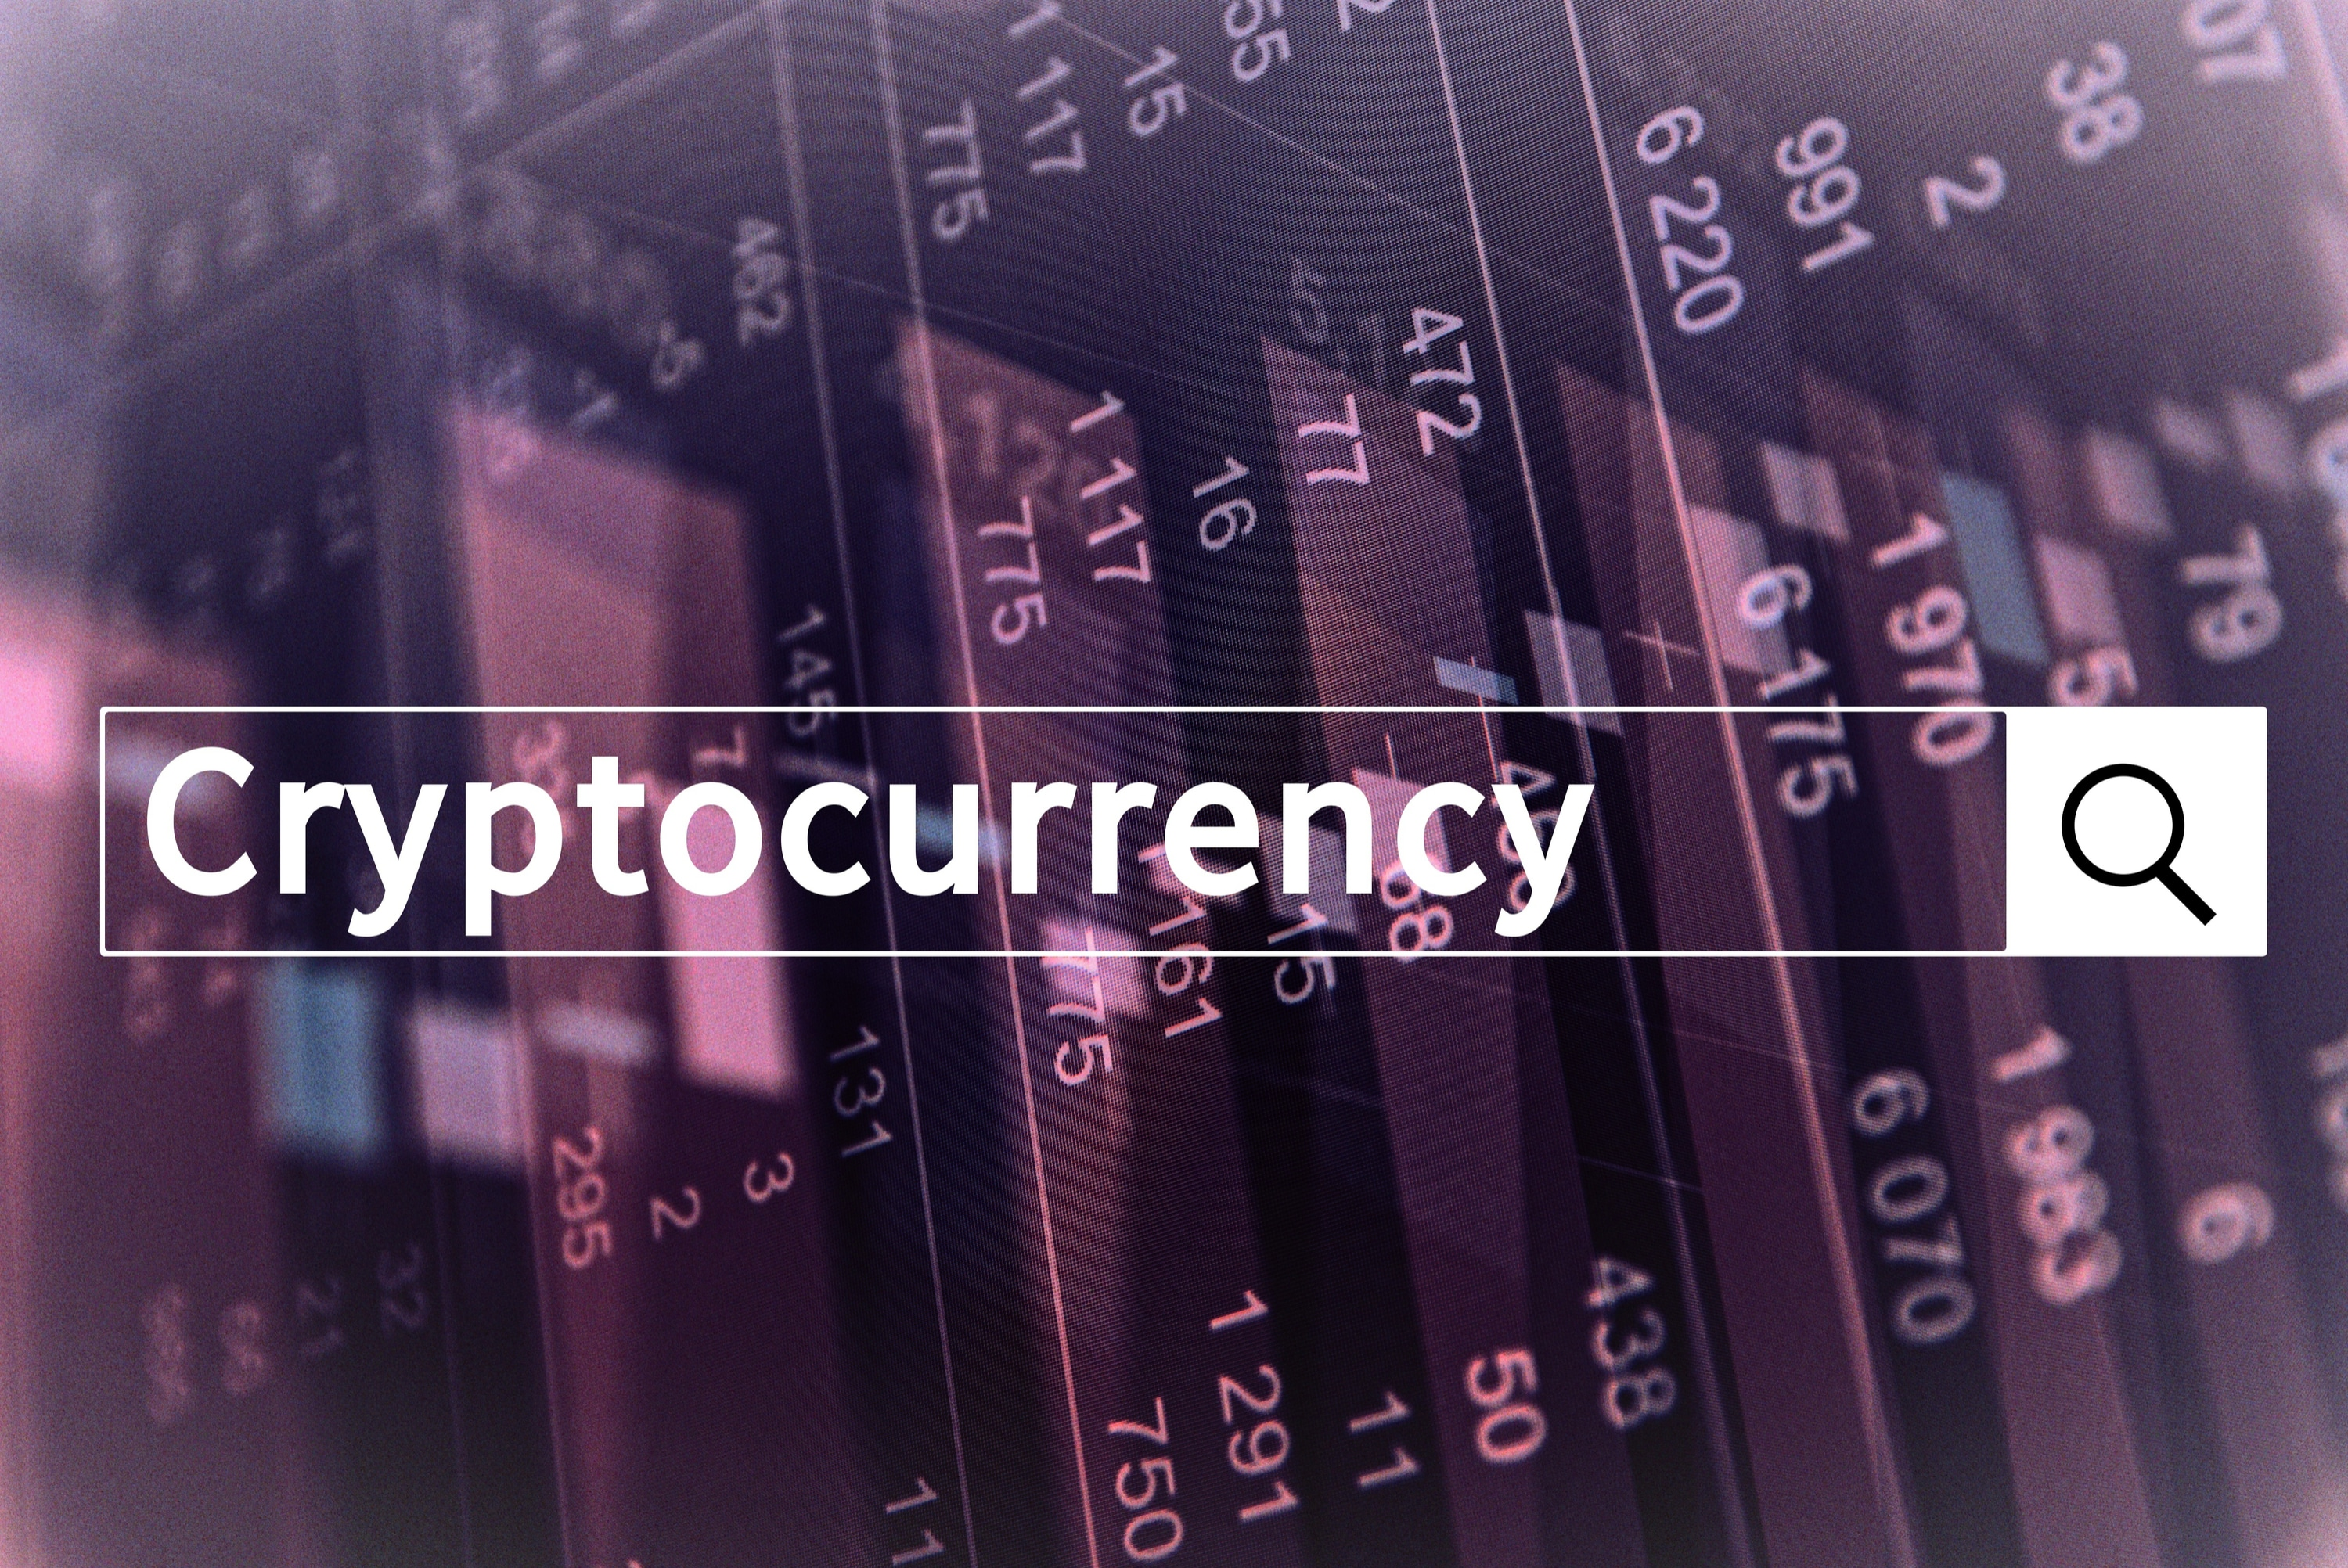 What Is Cryptocurrency - How It Works, History & Bitcoin